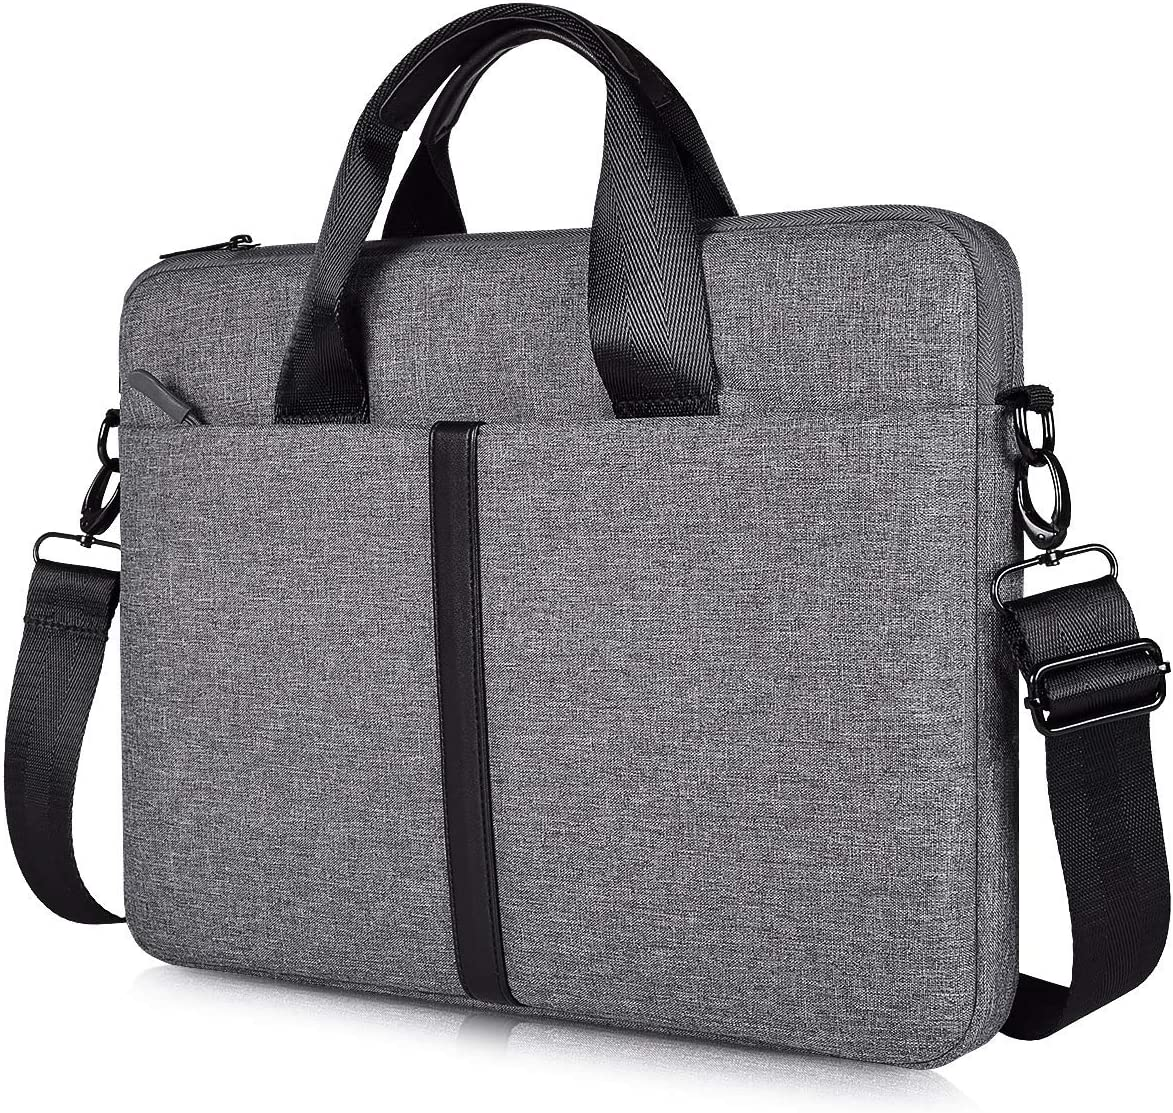 17.3 inch Laptop Shoulder Bag, Slim Waterproof Durable Business Briefcase Bag for 17.3 inch HP Dell Lenovo ASUS ACER MSI Notebook, Gifts for Men Women, Space Grey